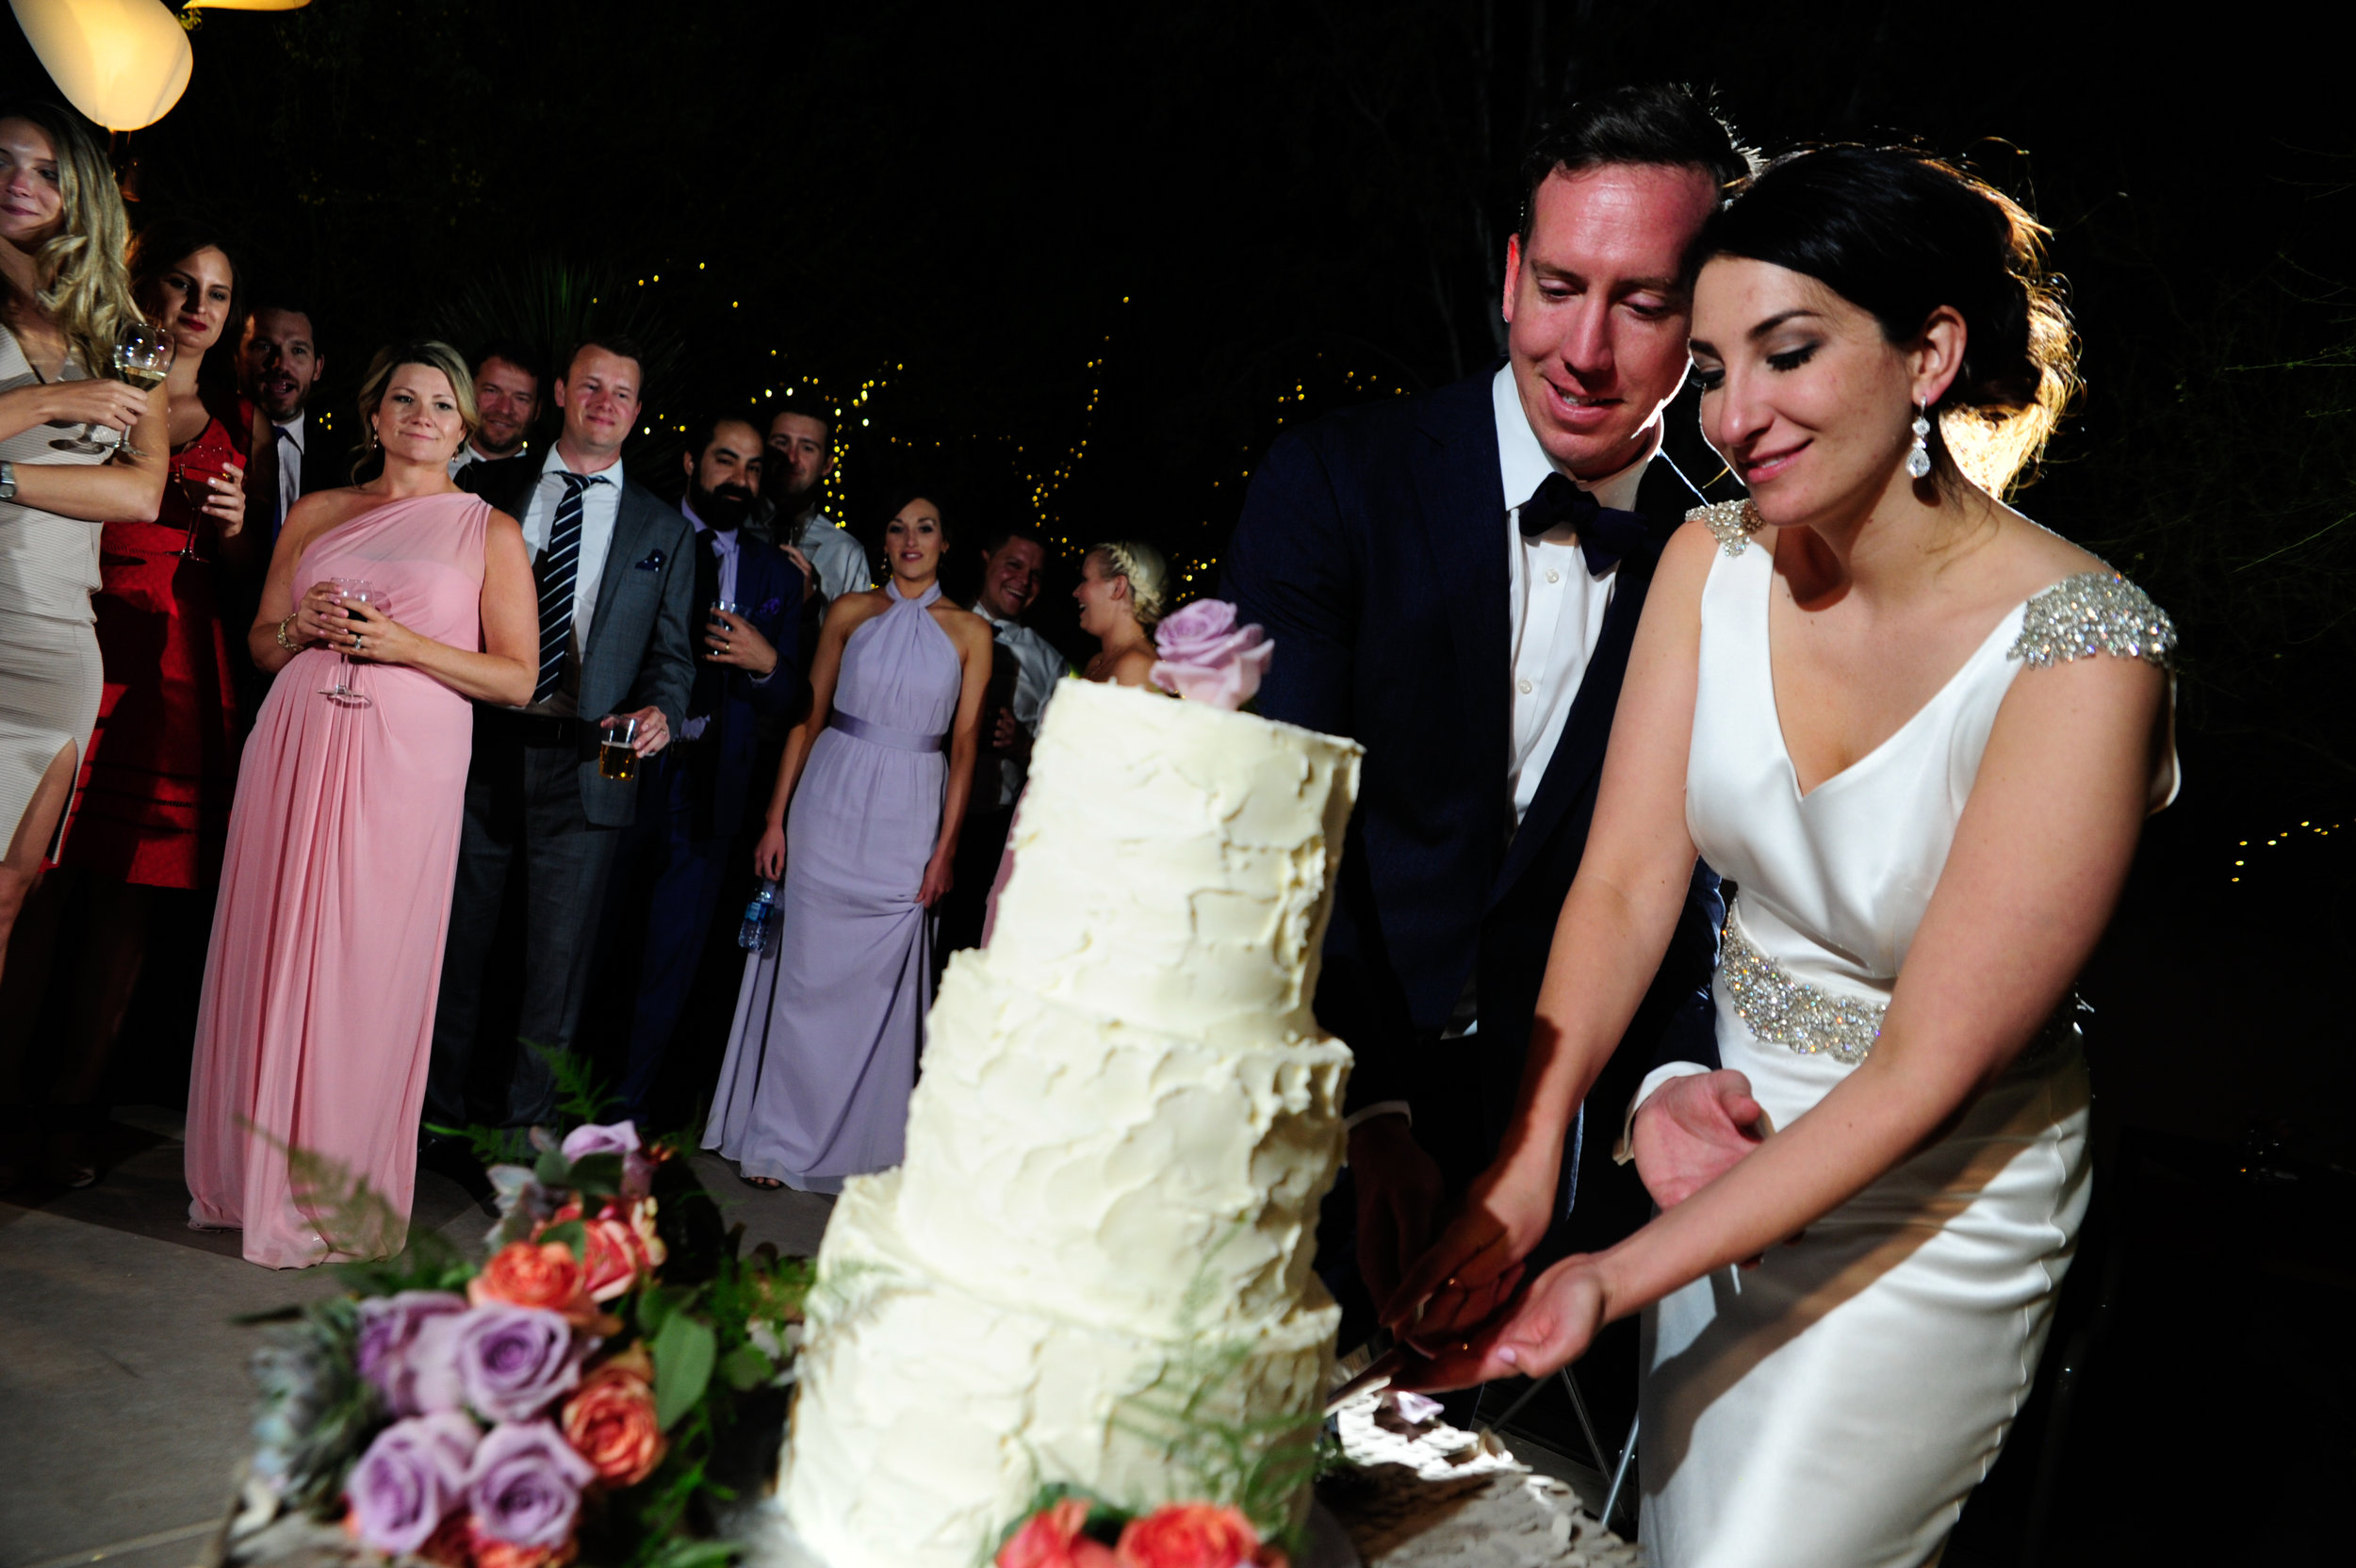 36 bride and groom cutting the cake simple wedding cake plain wedding cake all white wedding cake Mod Wed photography Life Design Events.jpg